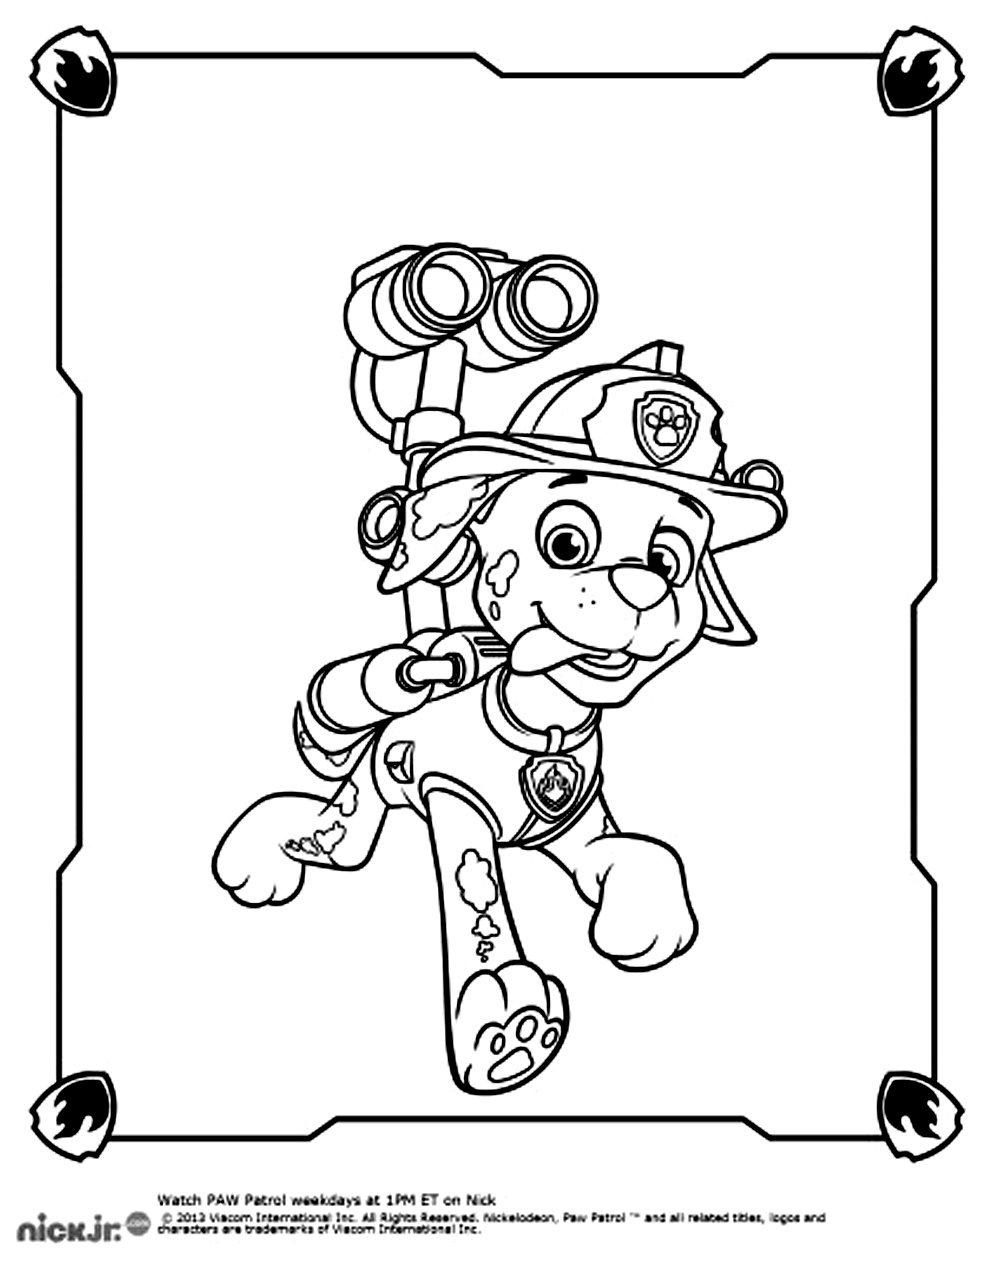 Incredible Paw Patrol coloring page to print and color for free